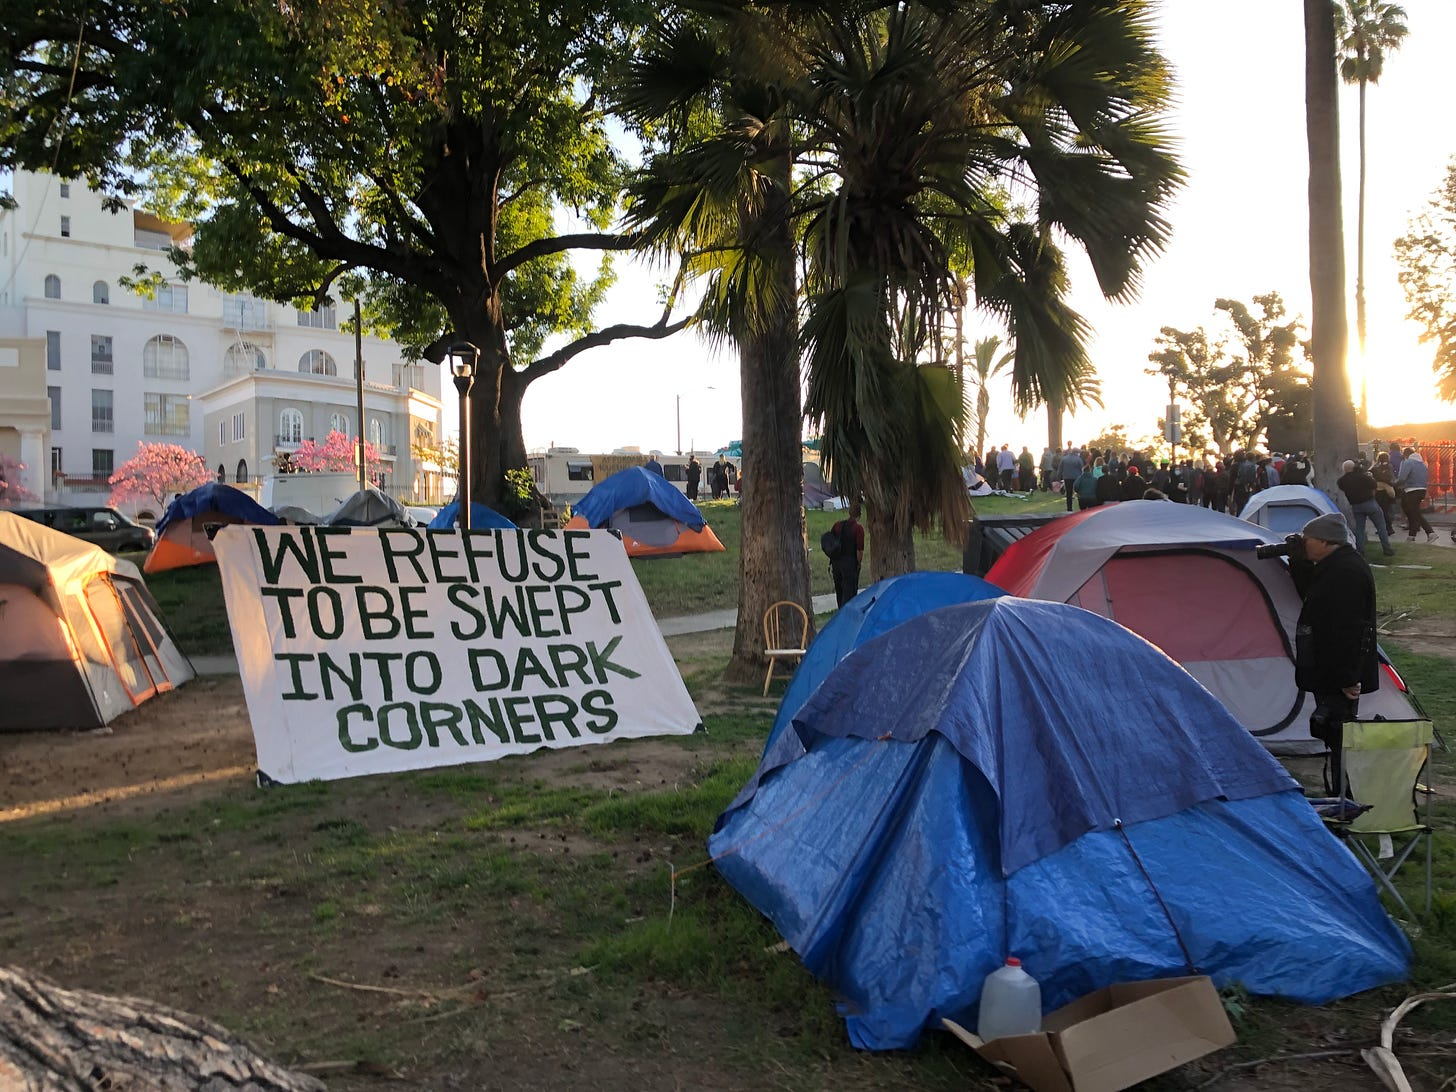 """Tents in the park, and a sign that reads """"WE REFUSE TO BE SWEPT INTO DARK CORNERS"""""""